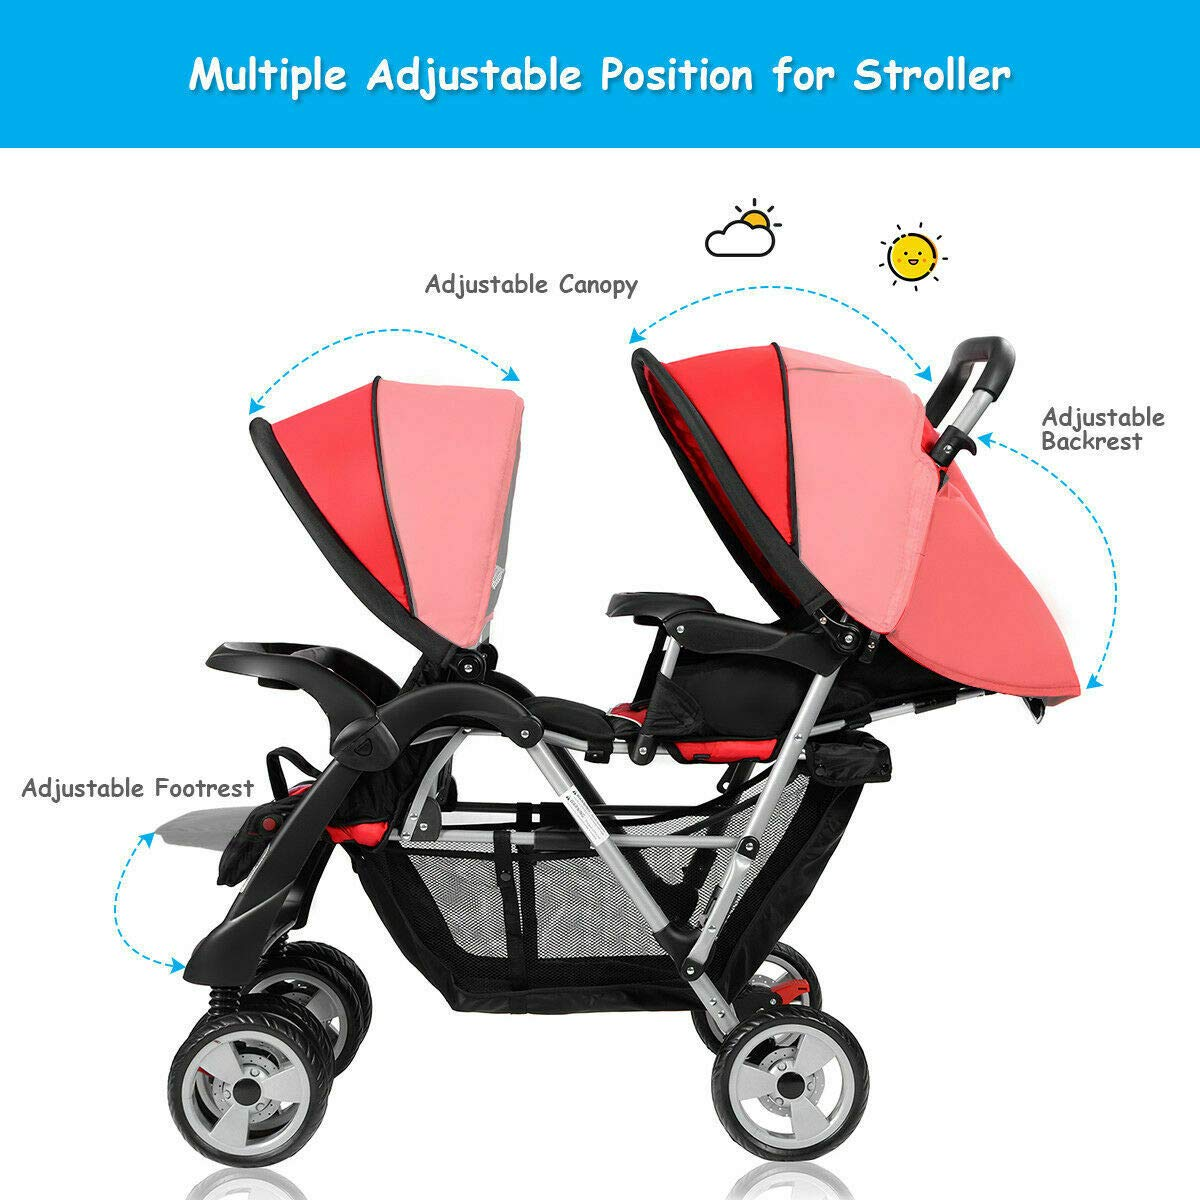 Cozinest Foldable Twin Baby Double Stroller Kids Jogger Travel Infant Pushchair Red by Cozinest (Image #9)